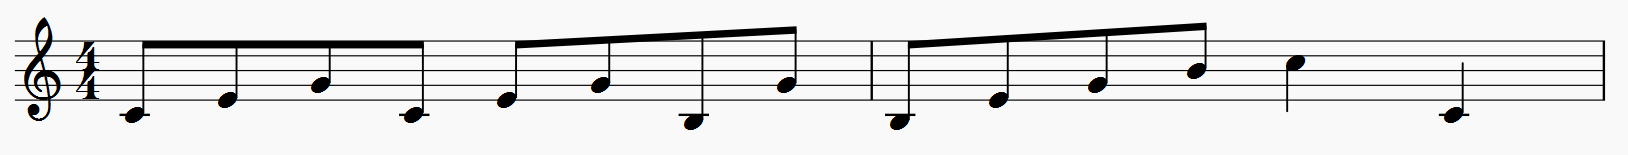 scale_melody_score